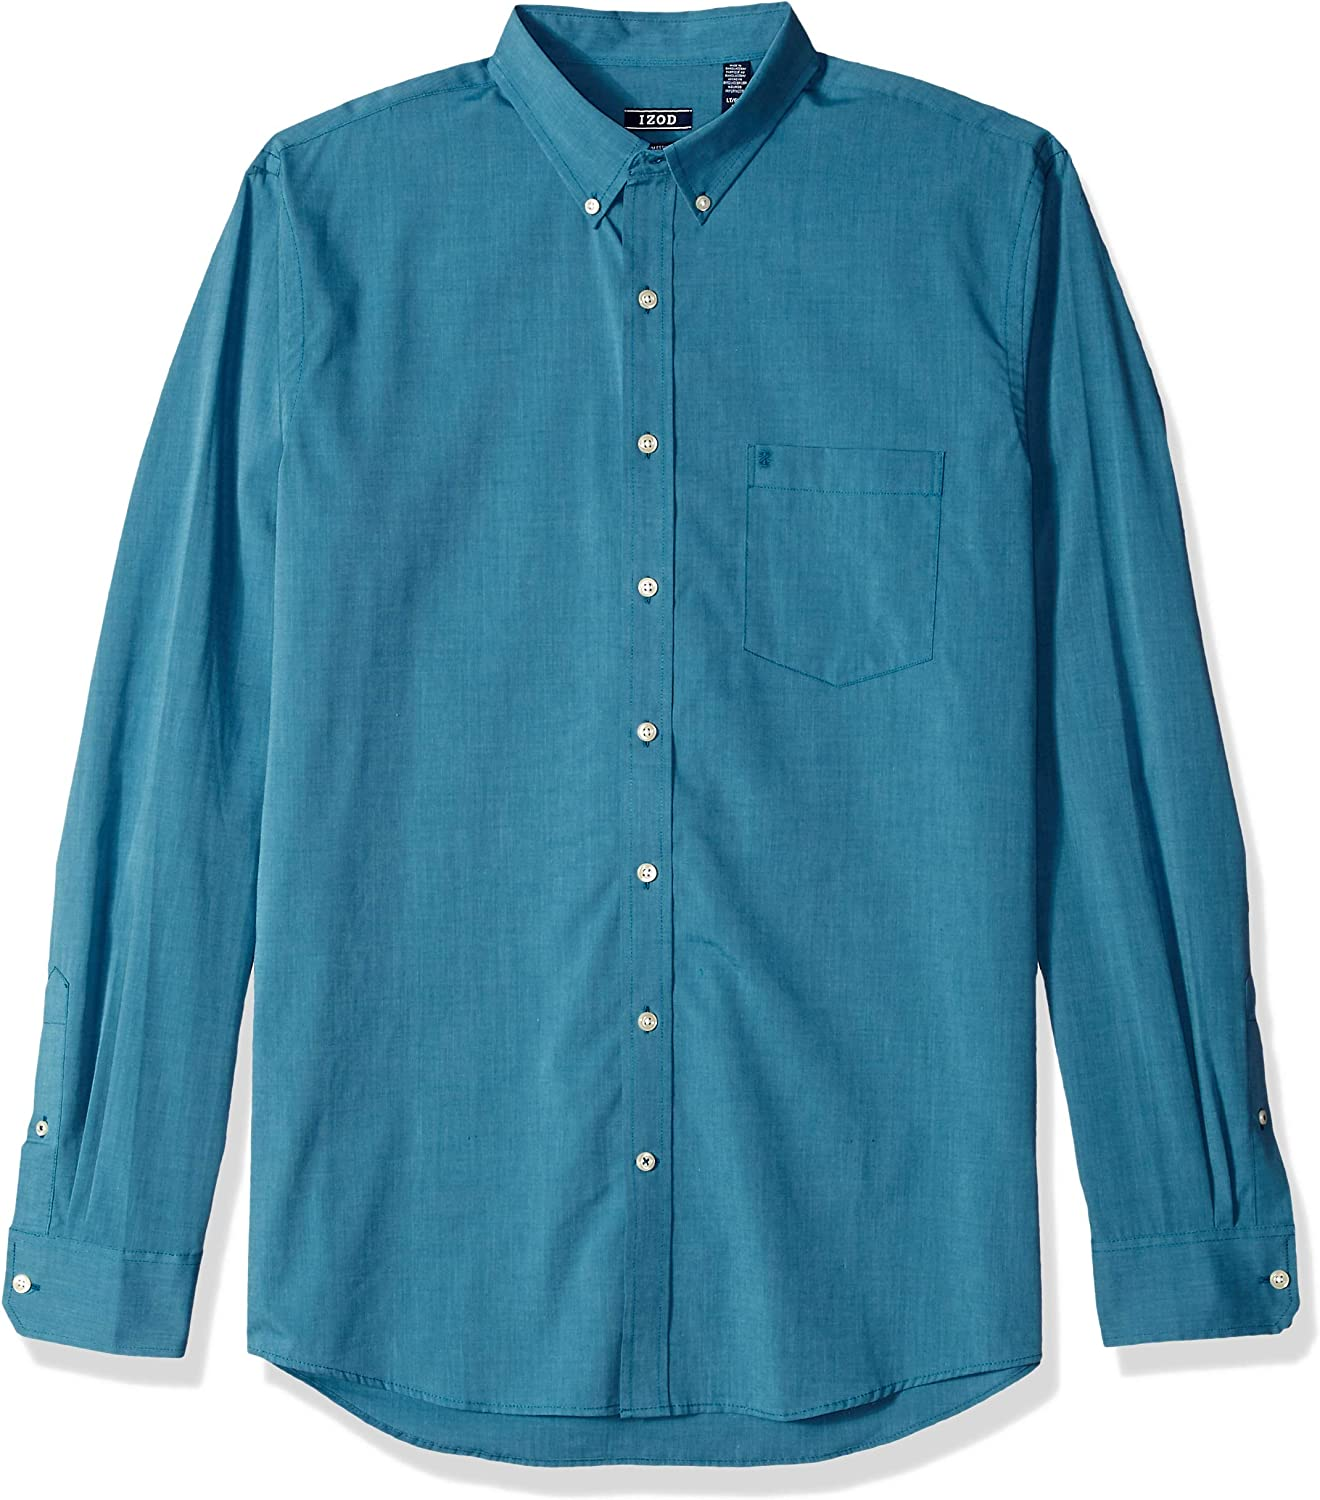 IZOD Men's Big and Tall Slim Fit Button Down Long Sleeve Stretch Performance Solid Shirt